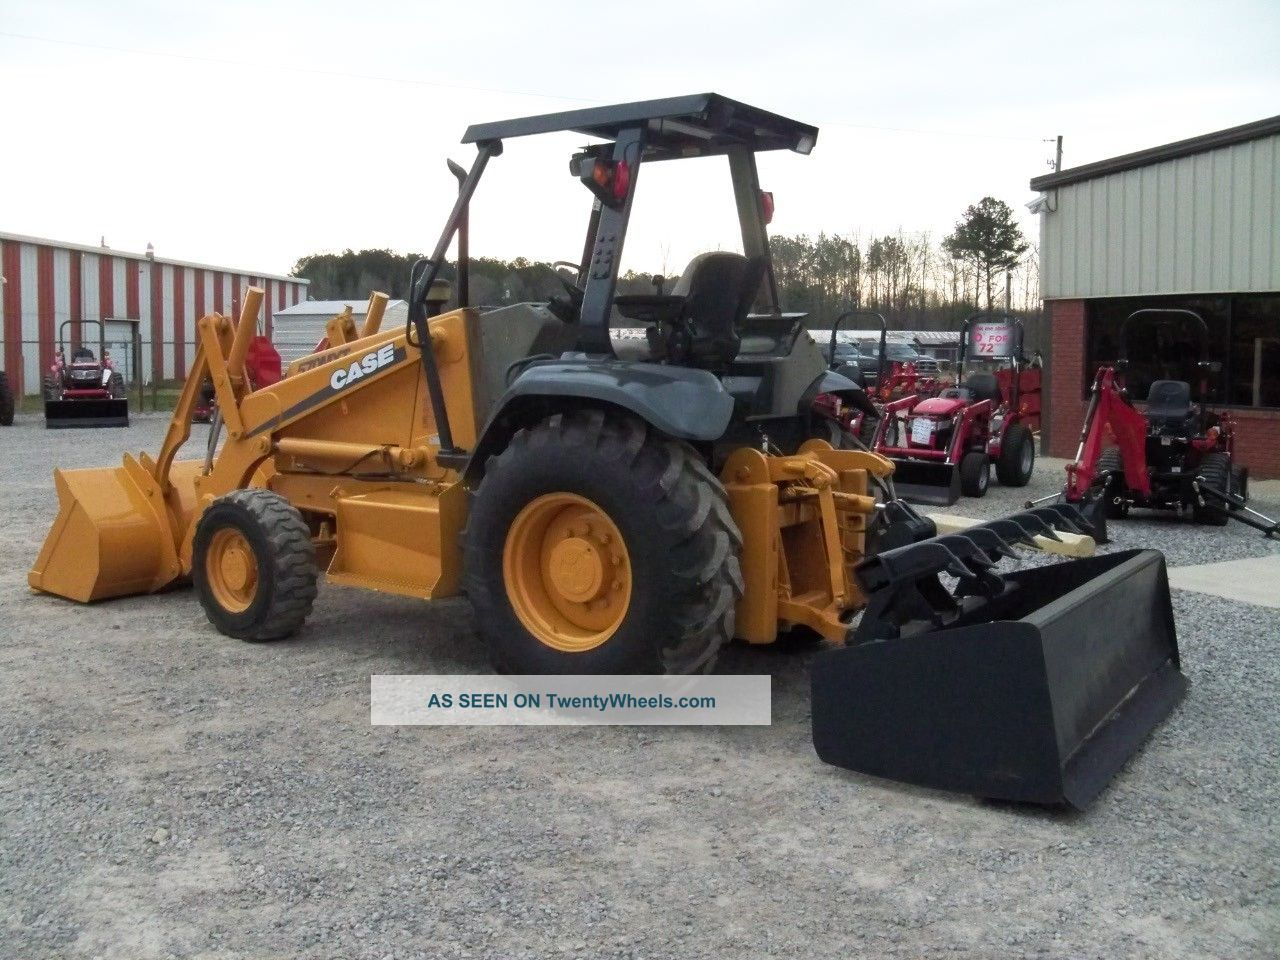 Case 570 Mxt Landscape Tractor With Front End Loader And Boxblade ...